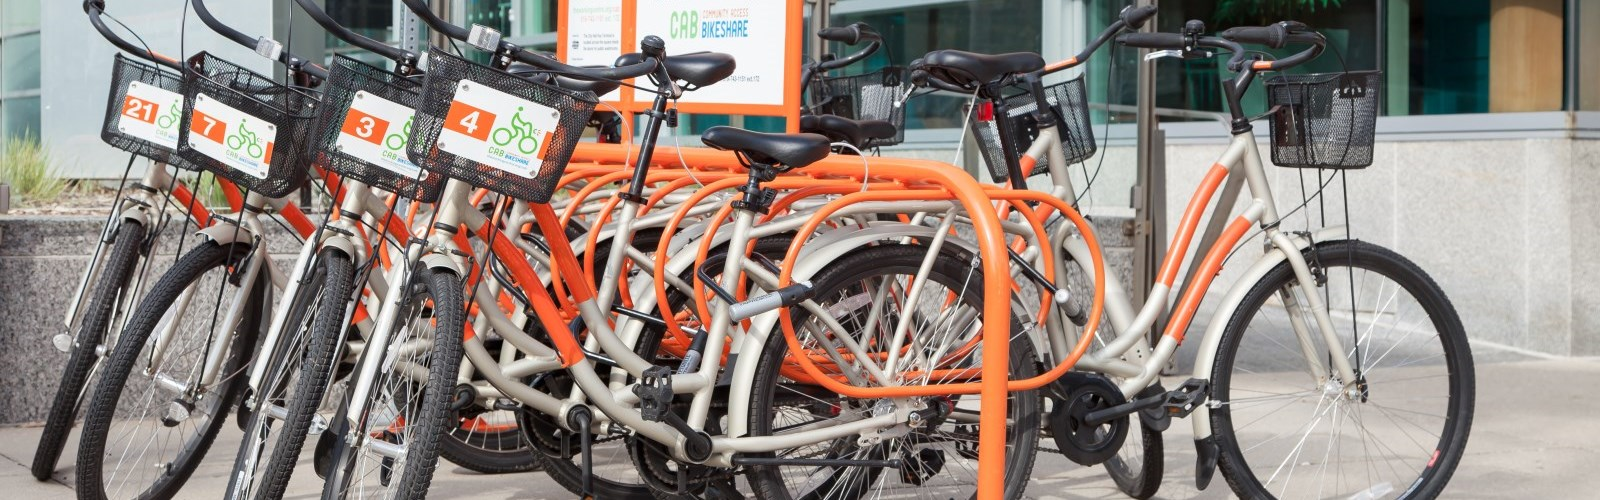 Picture of many bikes in a bike rack